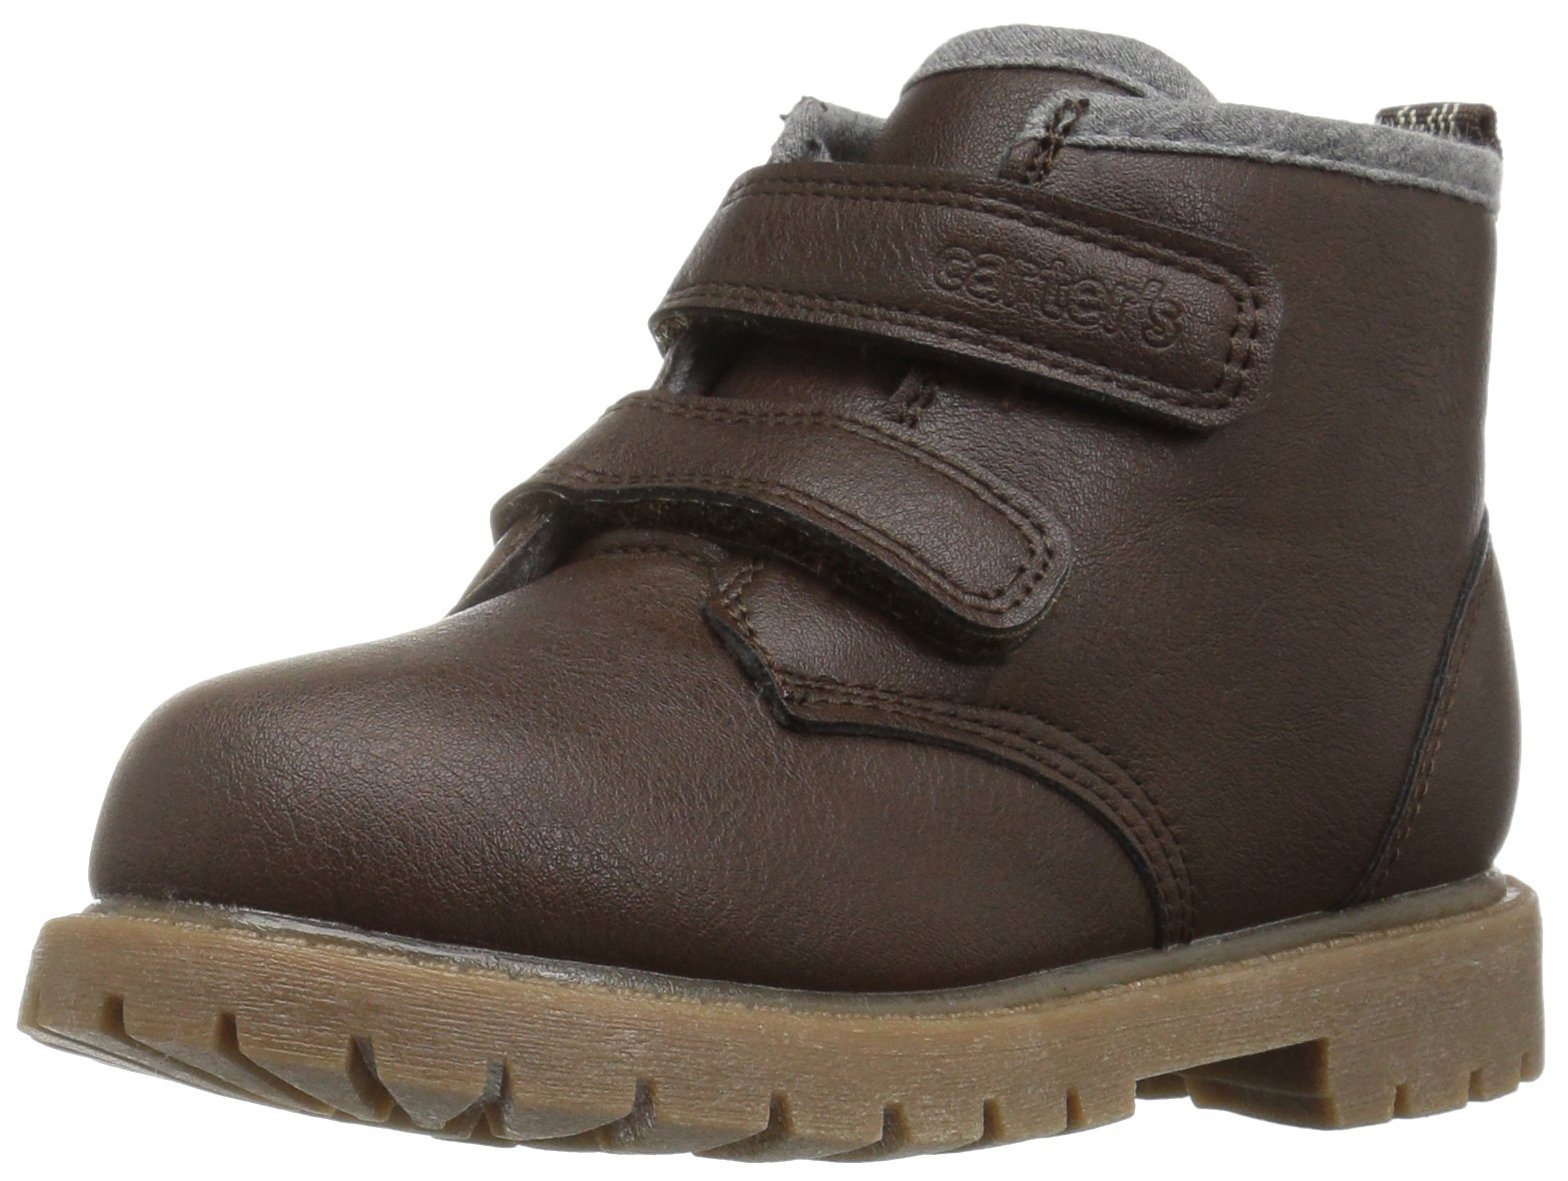 Carter's Boys' Gyor Fashion Boot, Brown, 5 M US Toddler